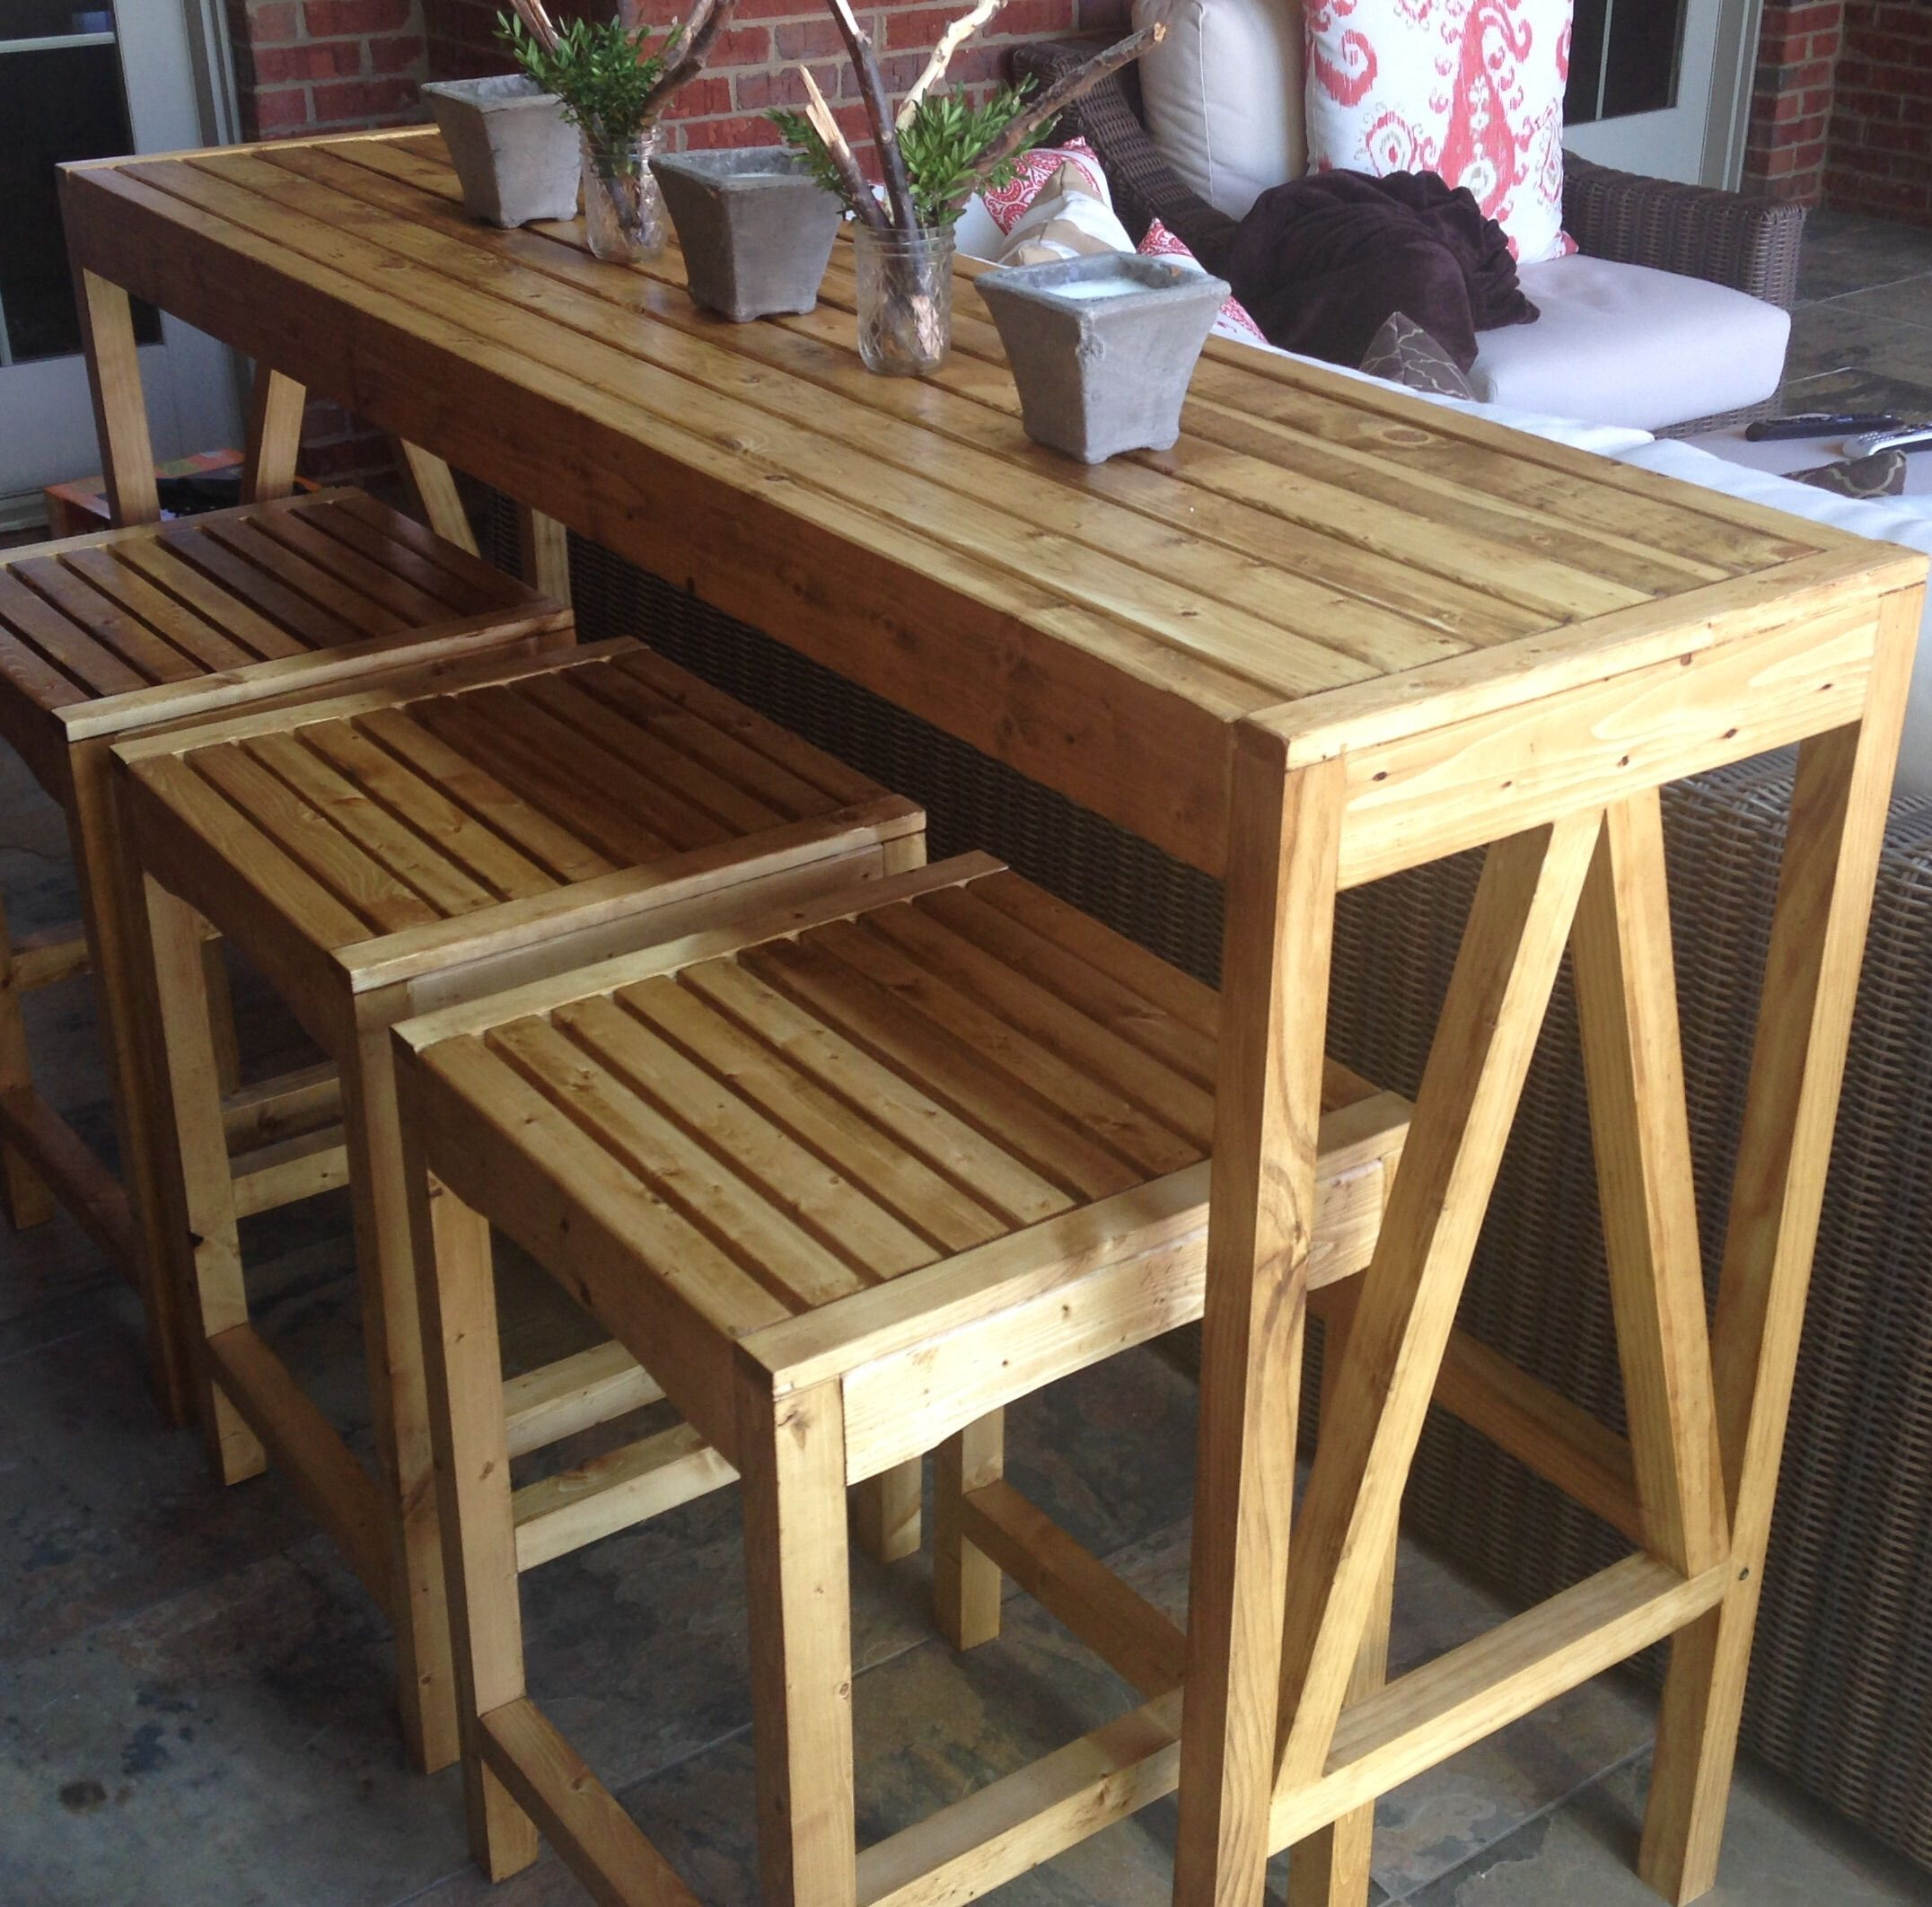 Build your own diy sutton custom outdoor bar stools with for Diy balcony bar